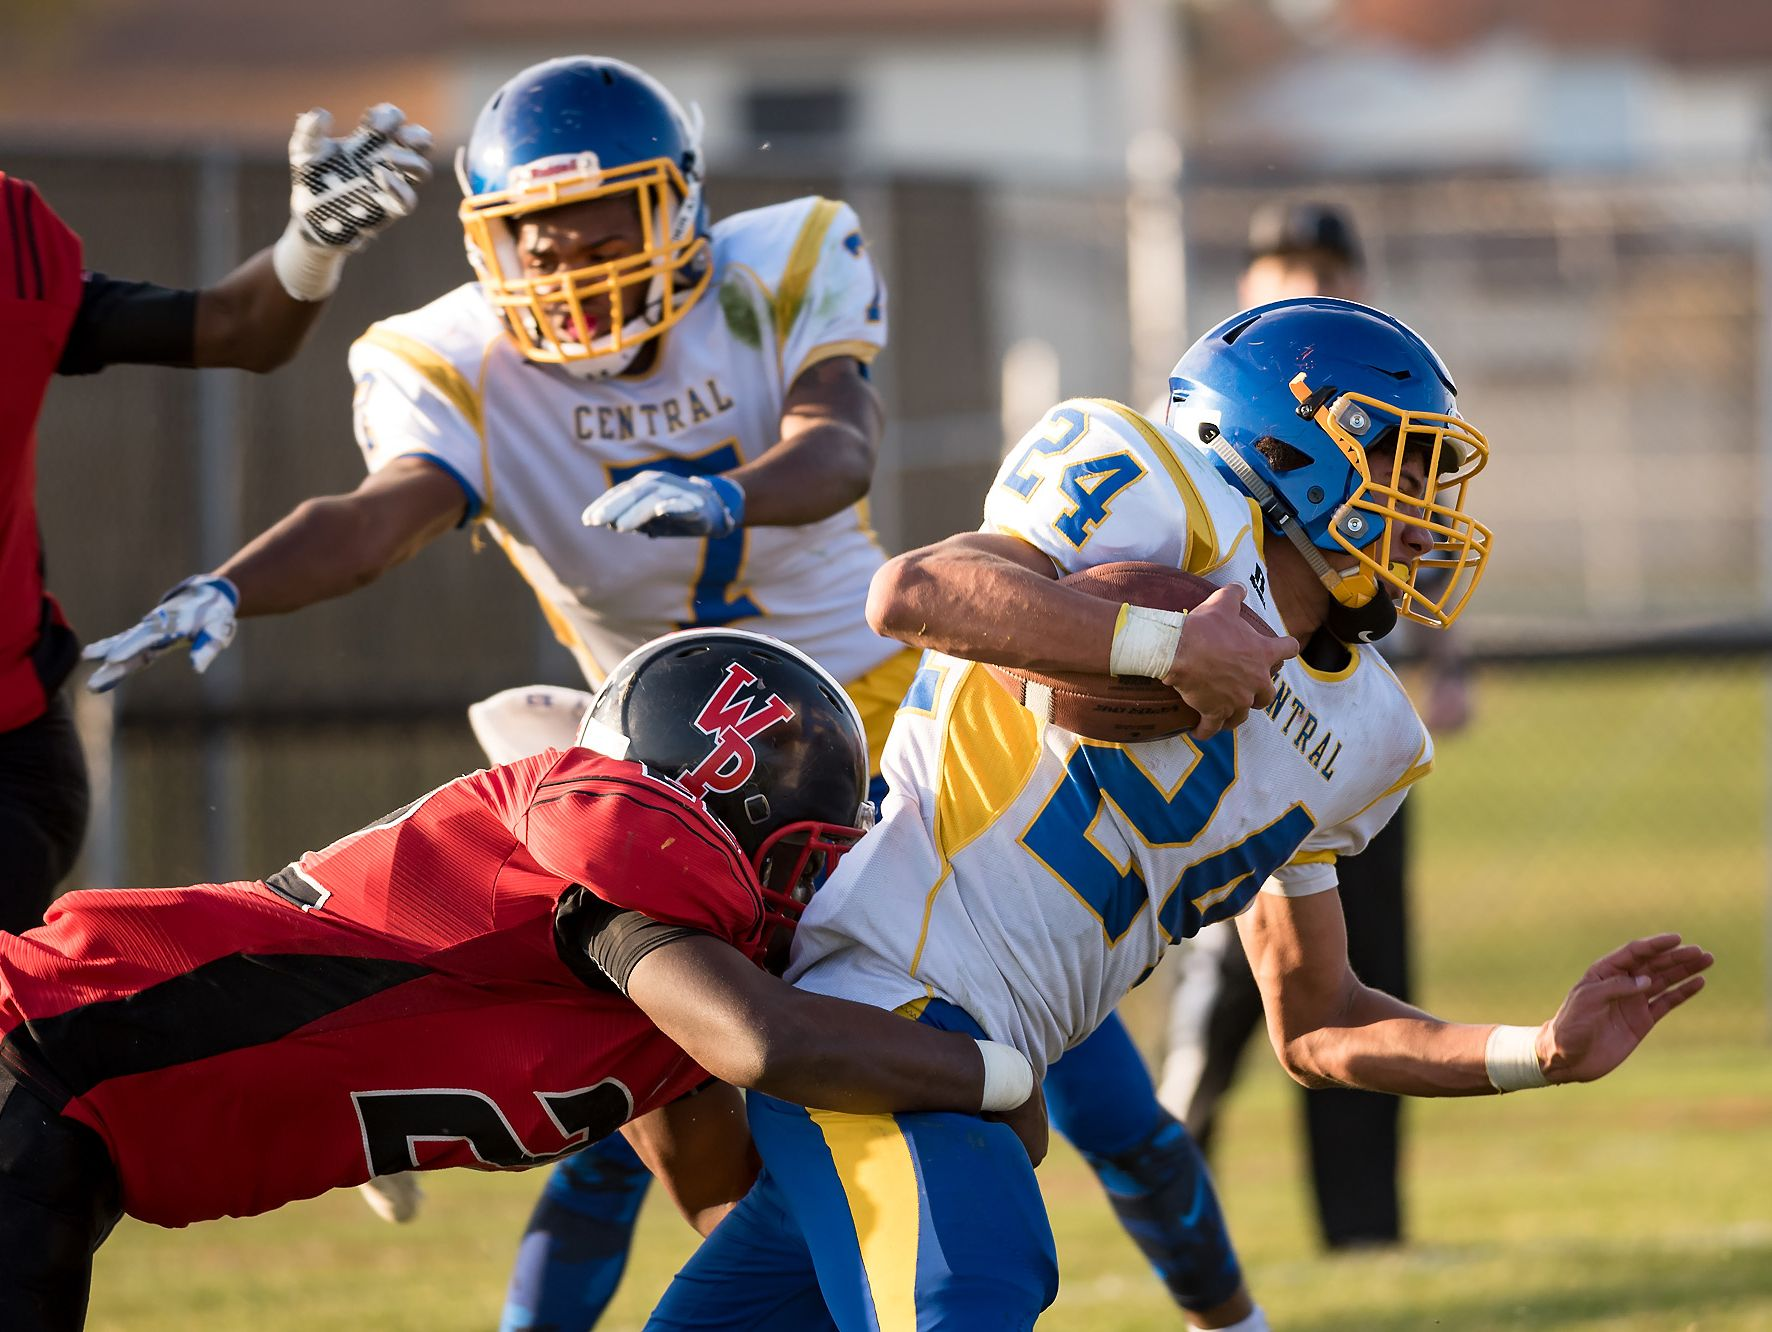 Isaiah Barnes of Sussex Central is tackled by Lance Edwards of William Penn as Sussex Central plays at William Penn in the opening round of DIAA Division II playoffs.